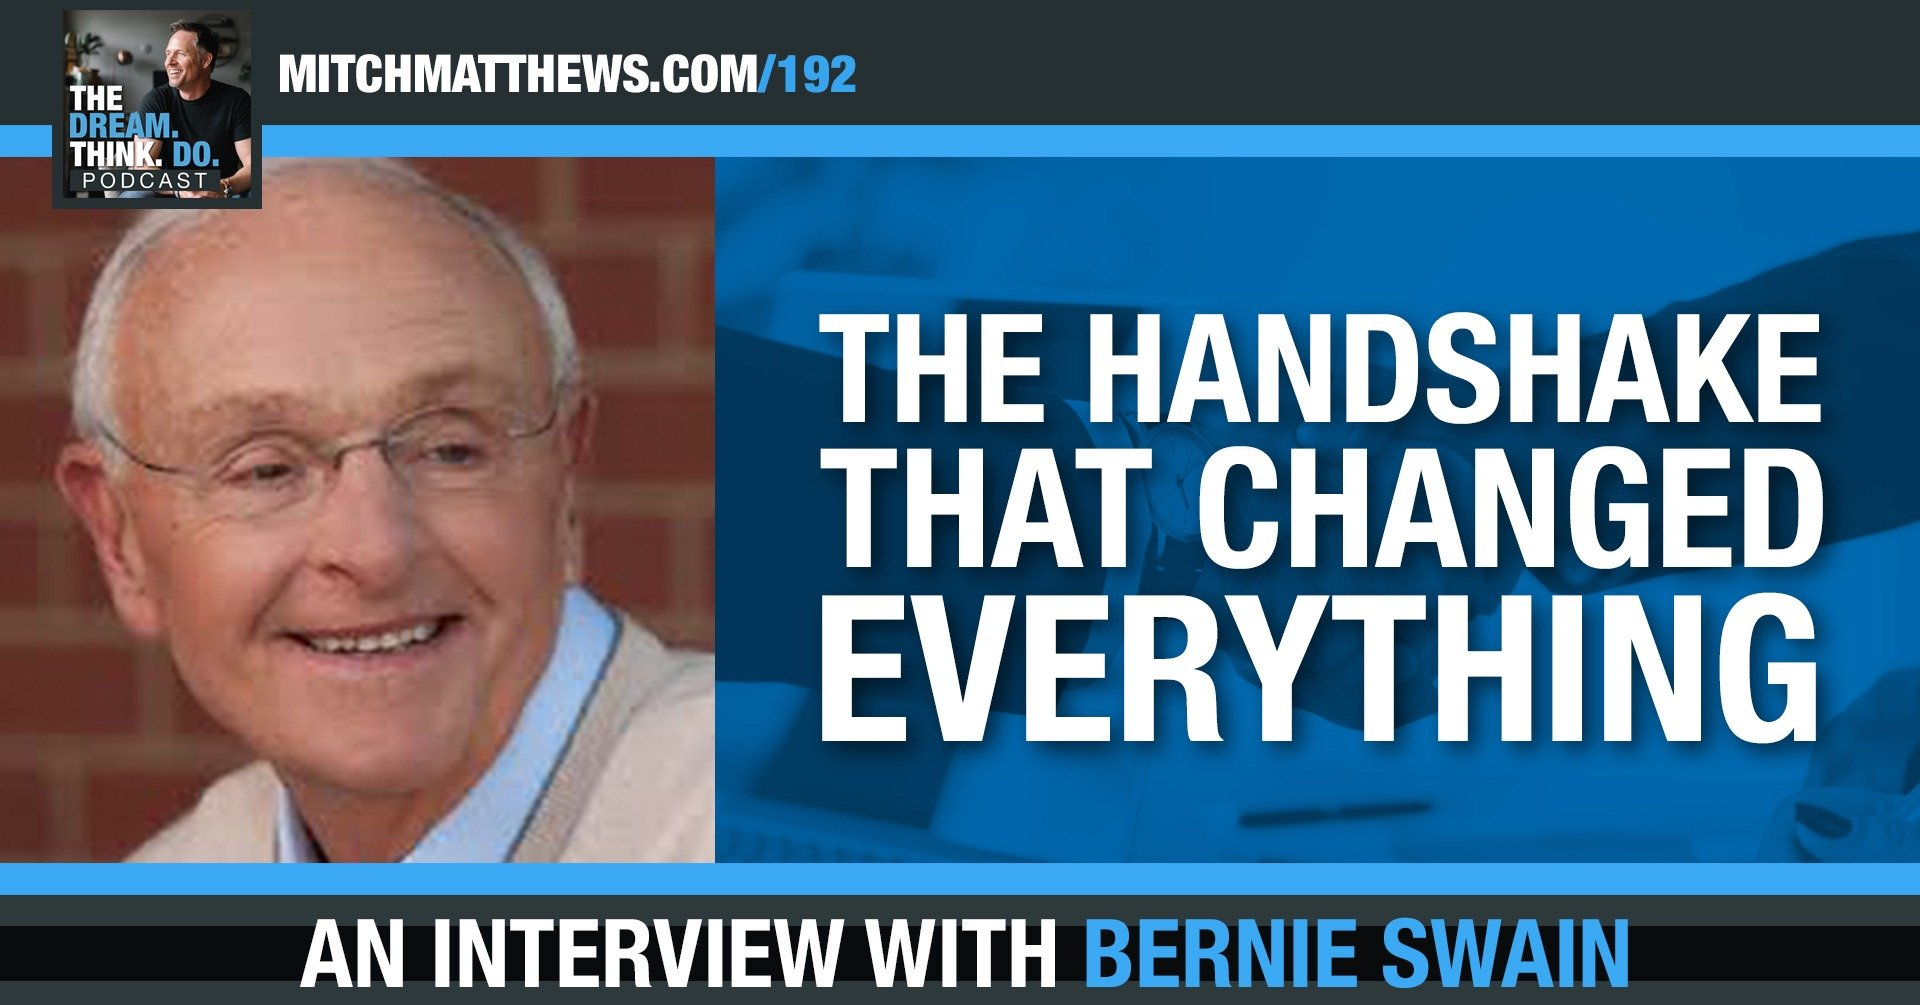 The Handshake that Changed Everything, with Bernie Swain